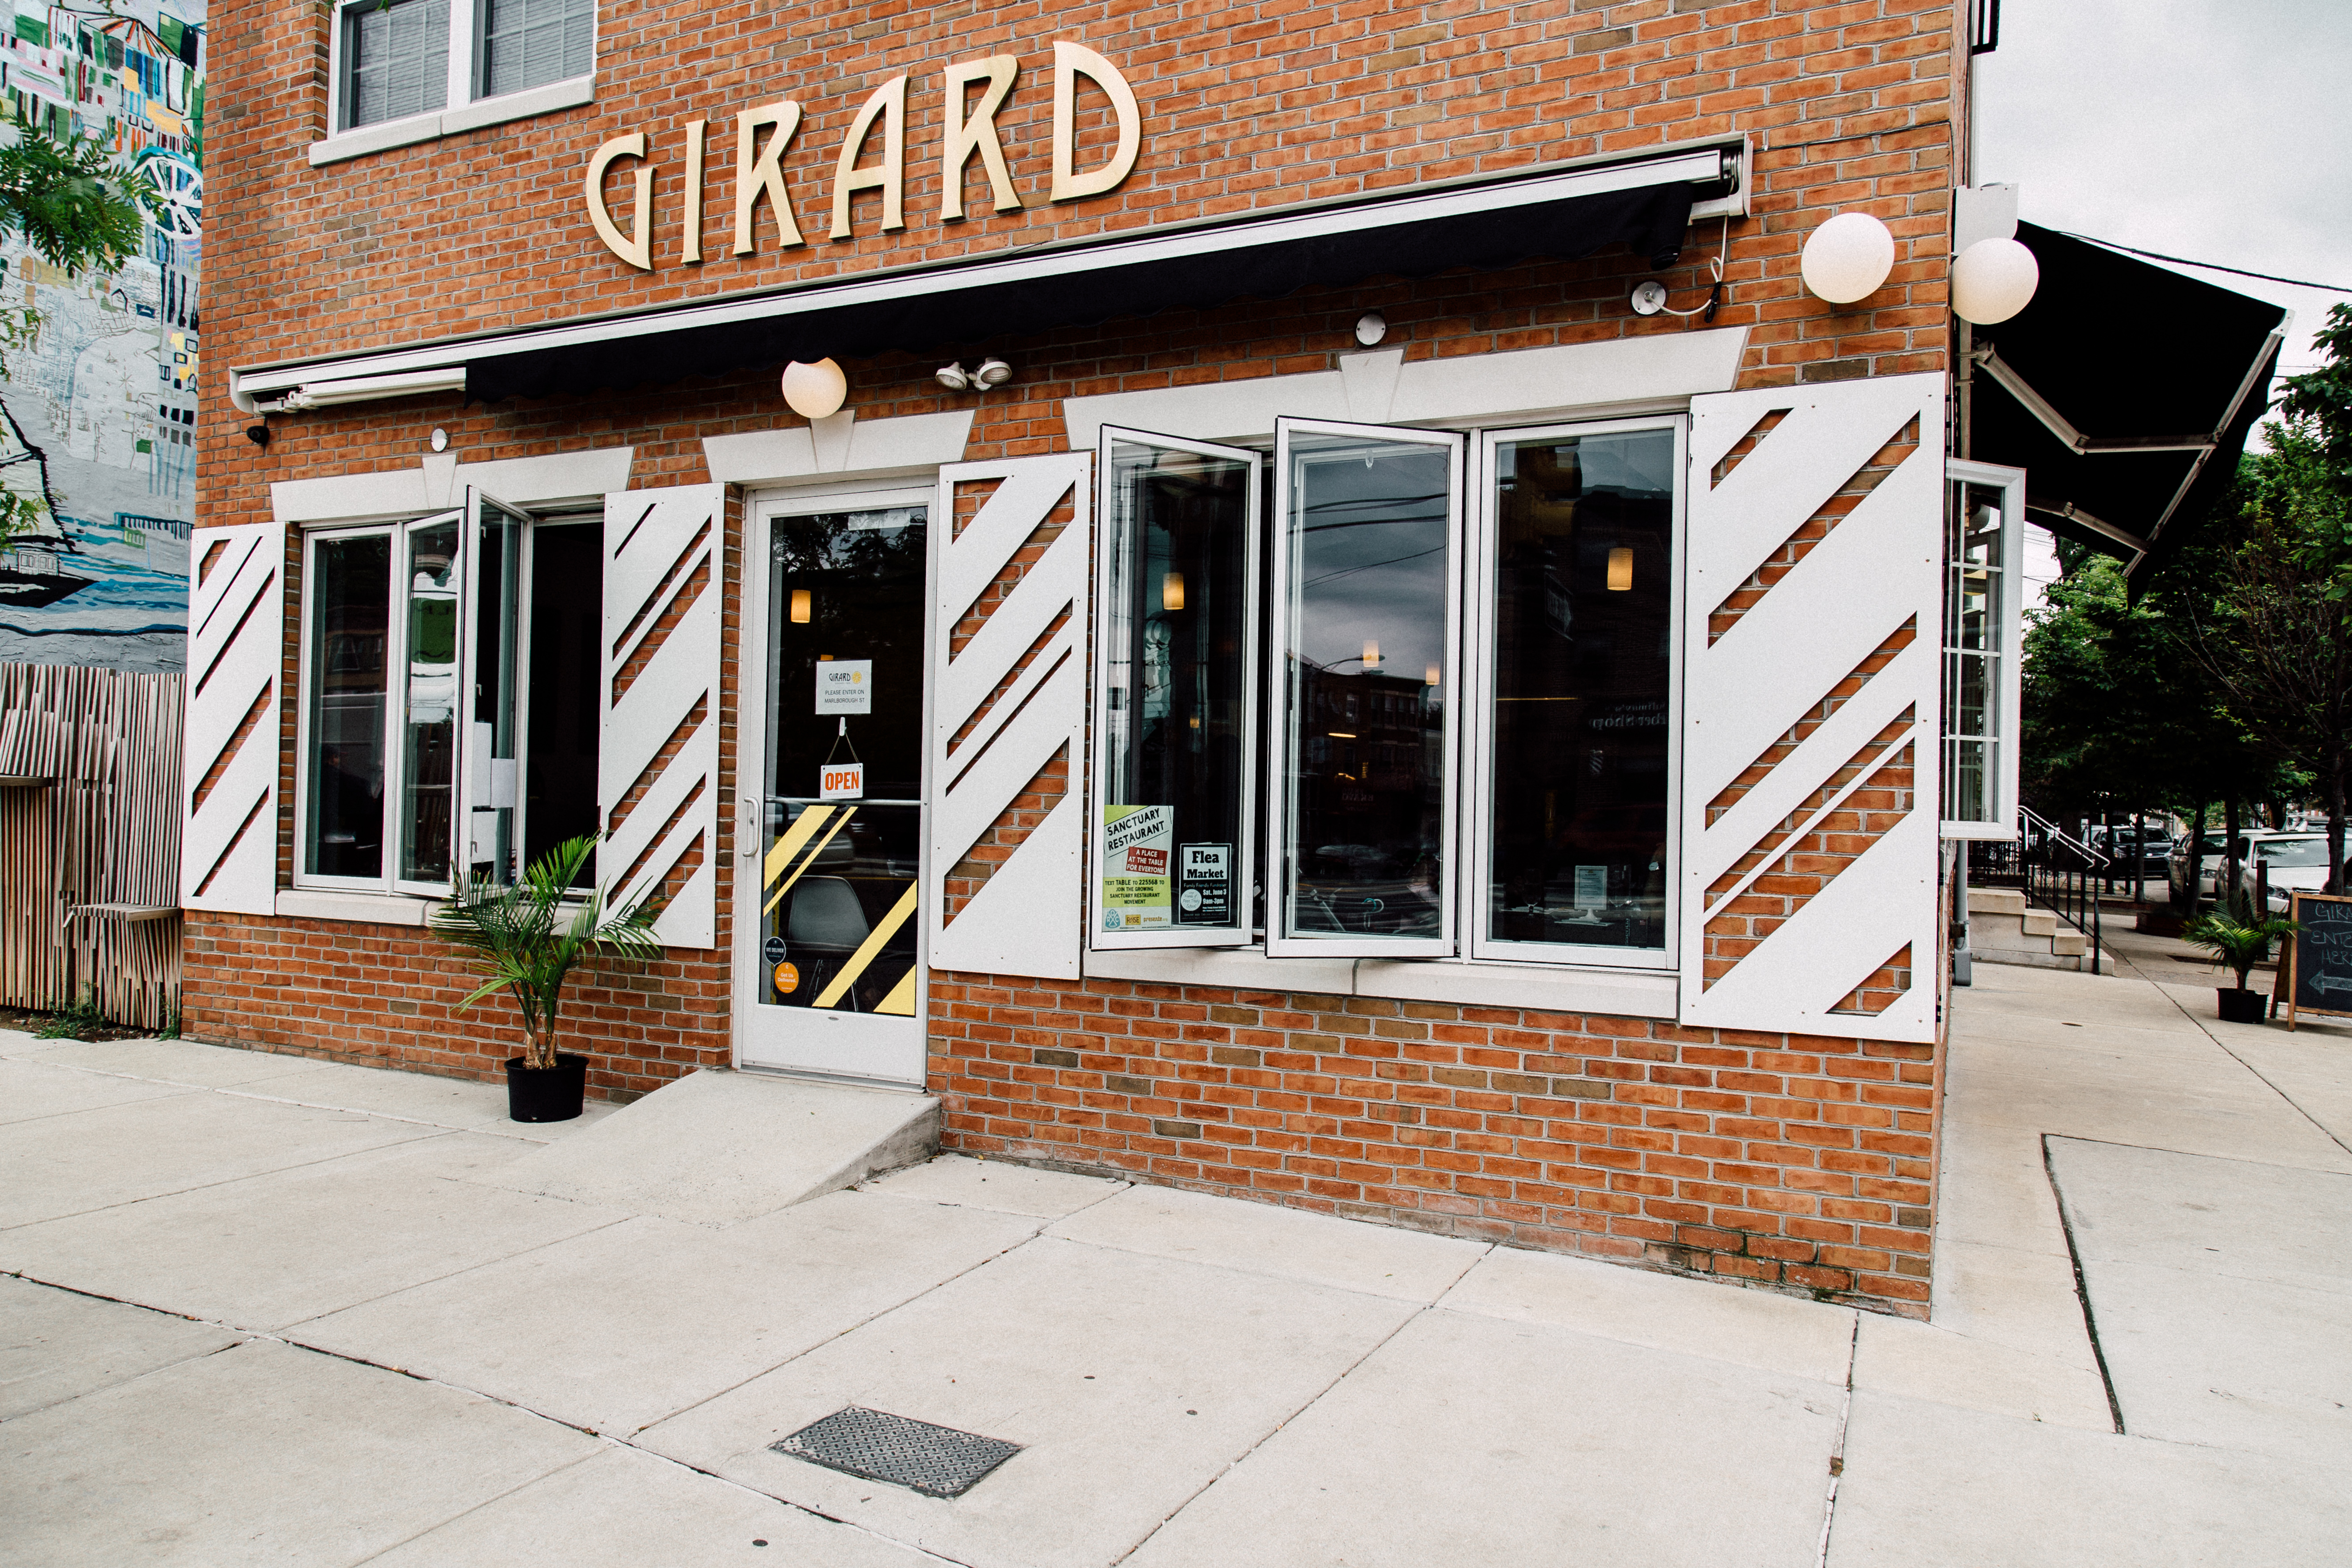 girard brunch